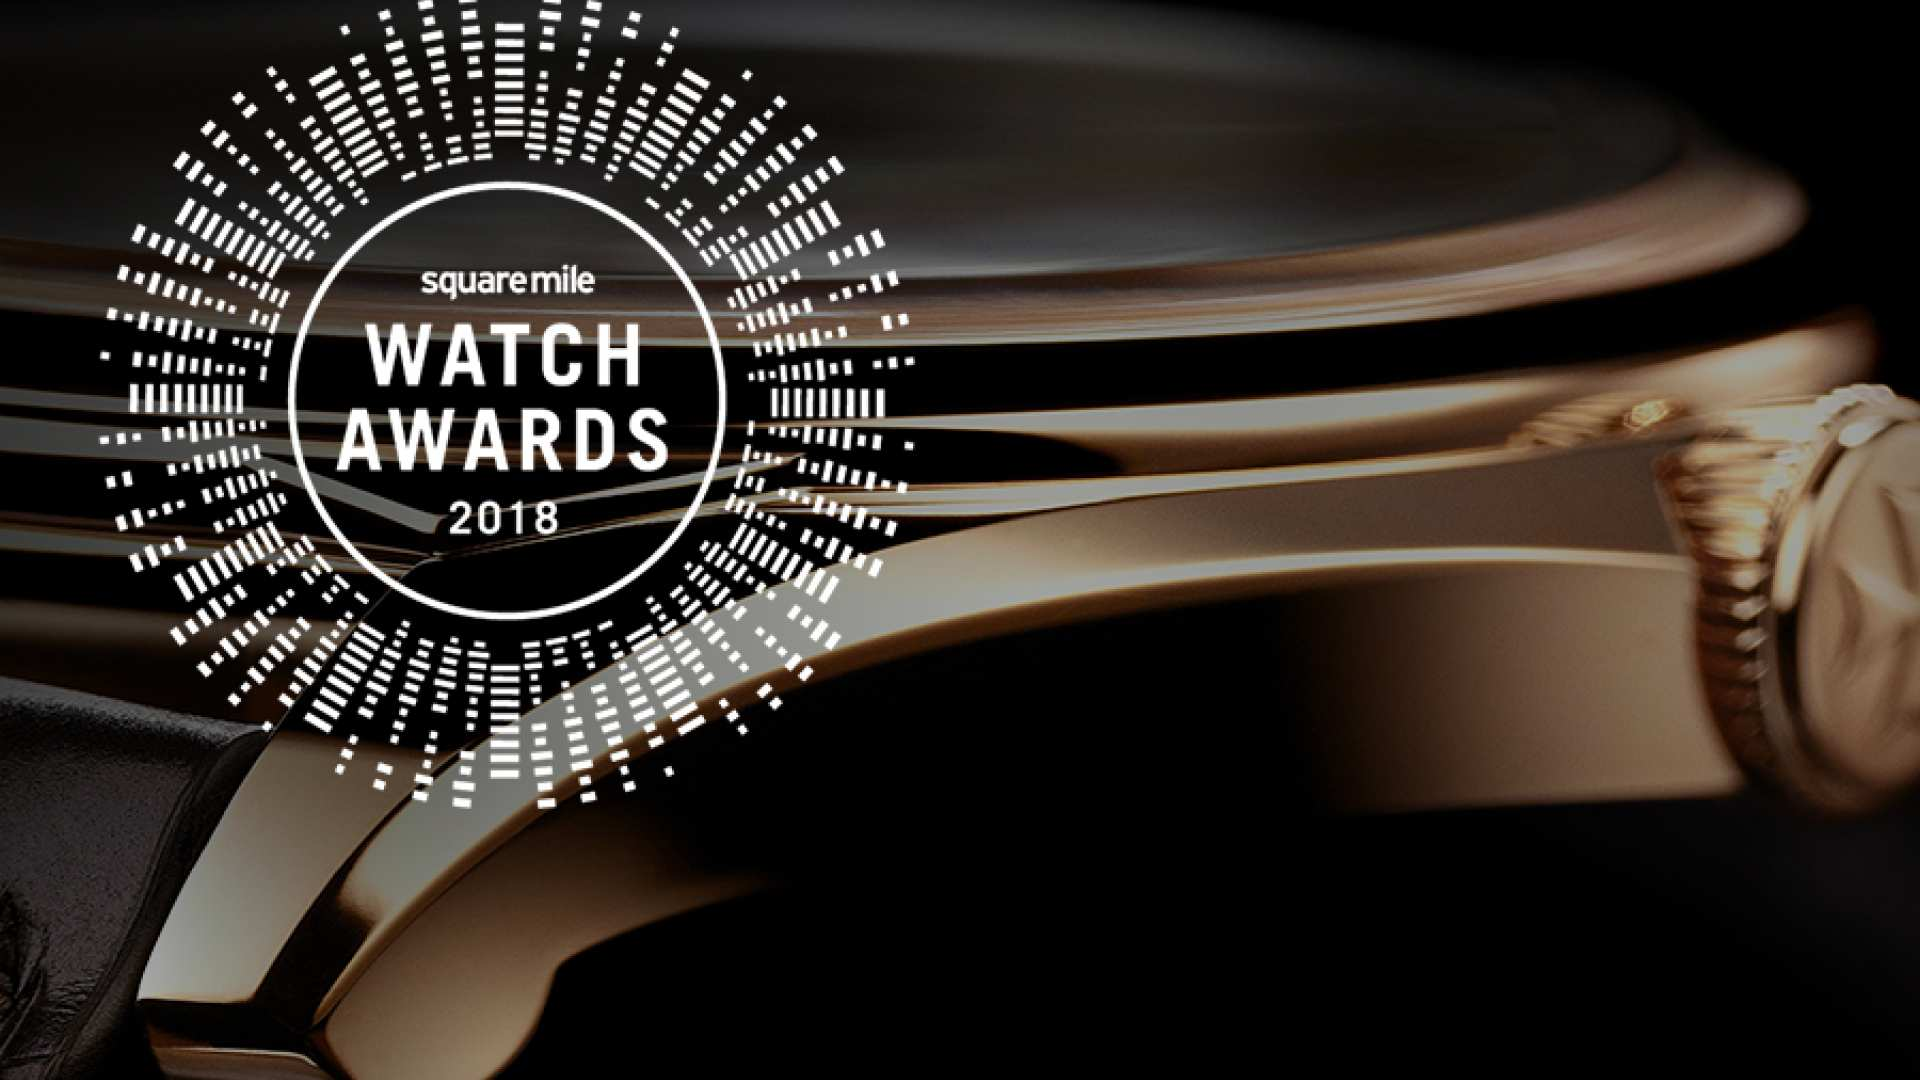 Square Mile Watch Awards 2018